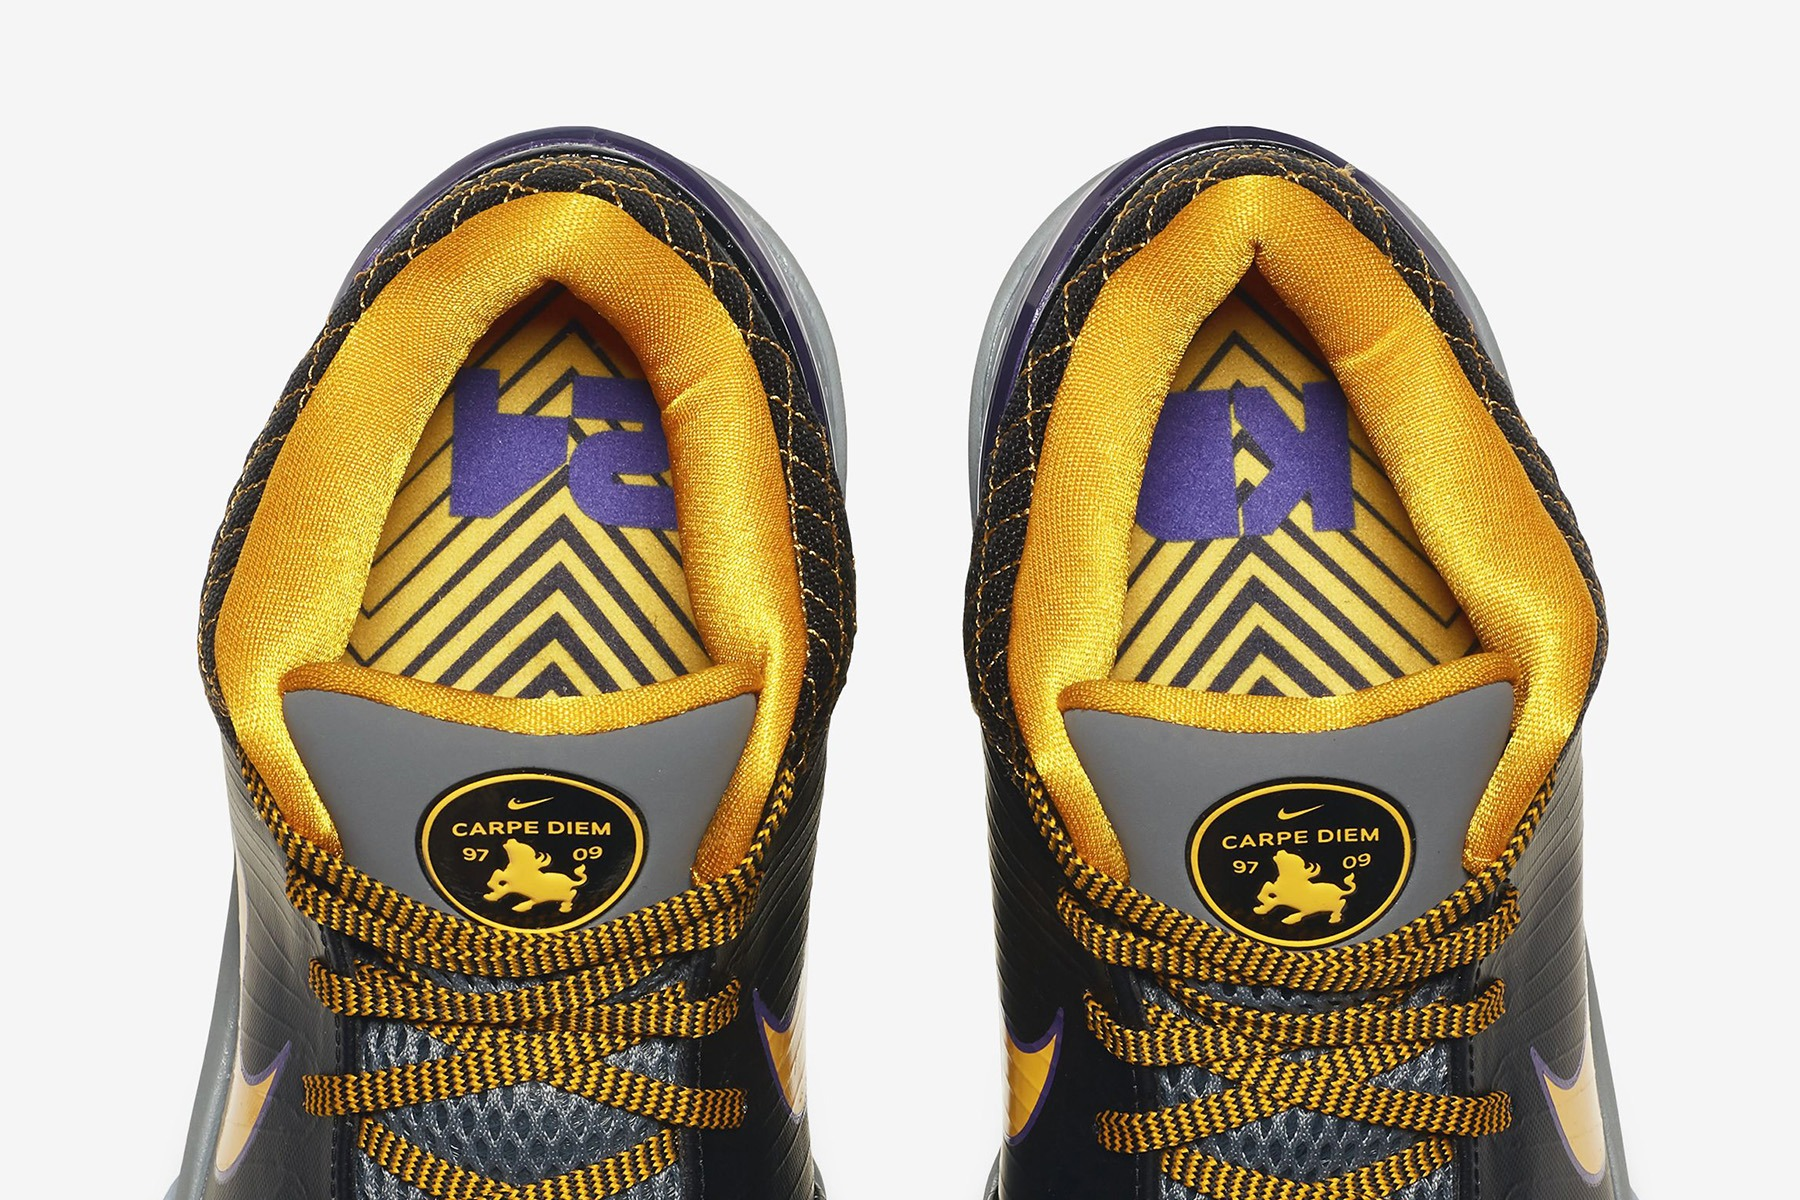 release date: a72fd 2c2e2 Seizing the moment, Kobe channeled his inner mamba mentality to lead his  team to a championship in 2009. That year, he was wearing the Zoom Kobe IV,  ...